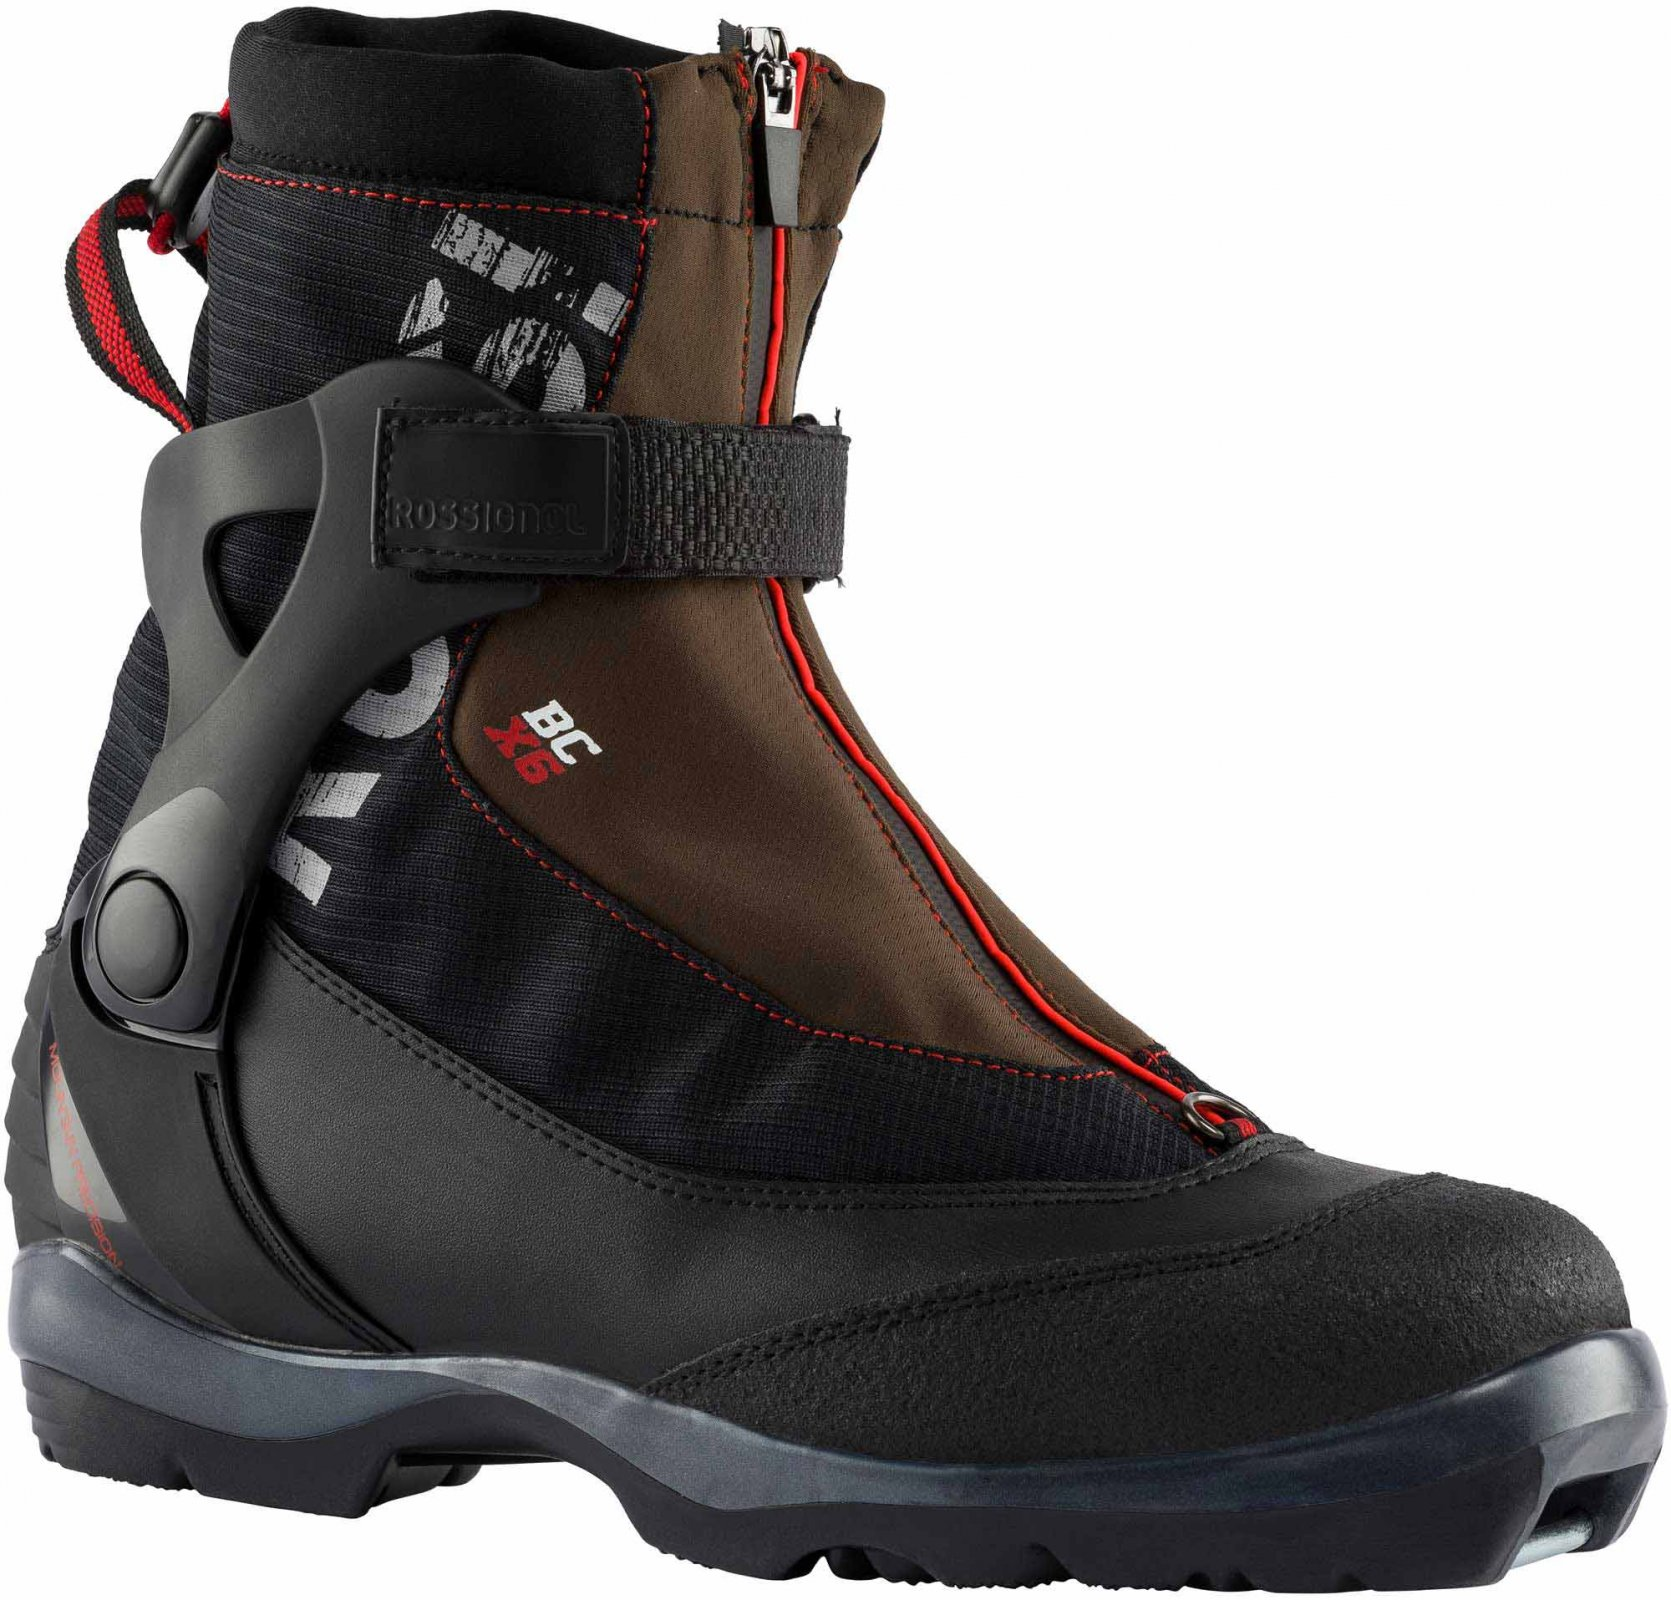 Rossignol BC X6 Boots 2020